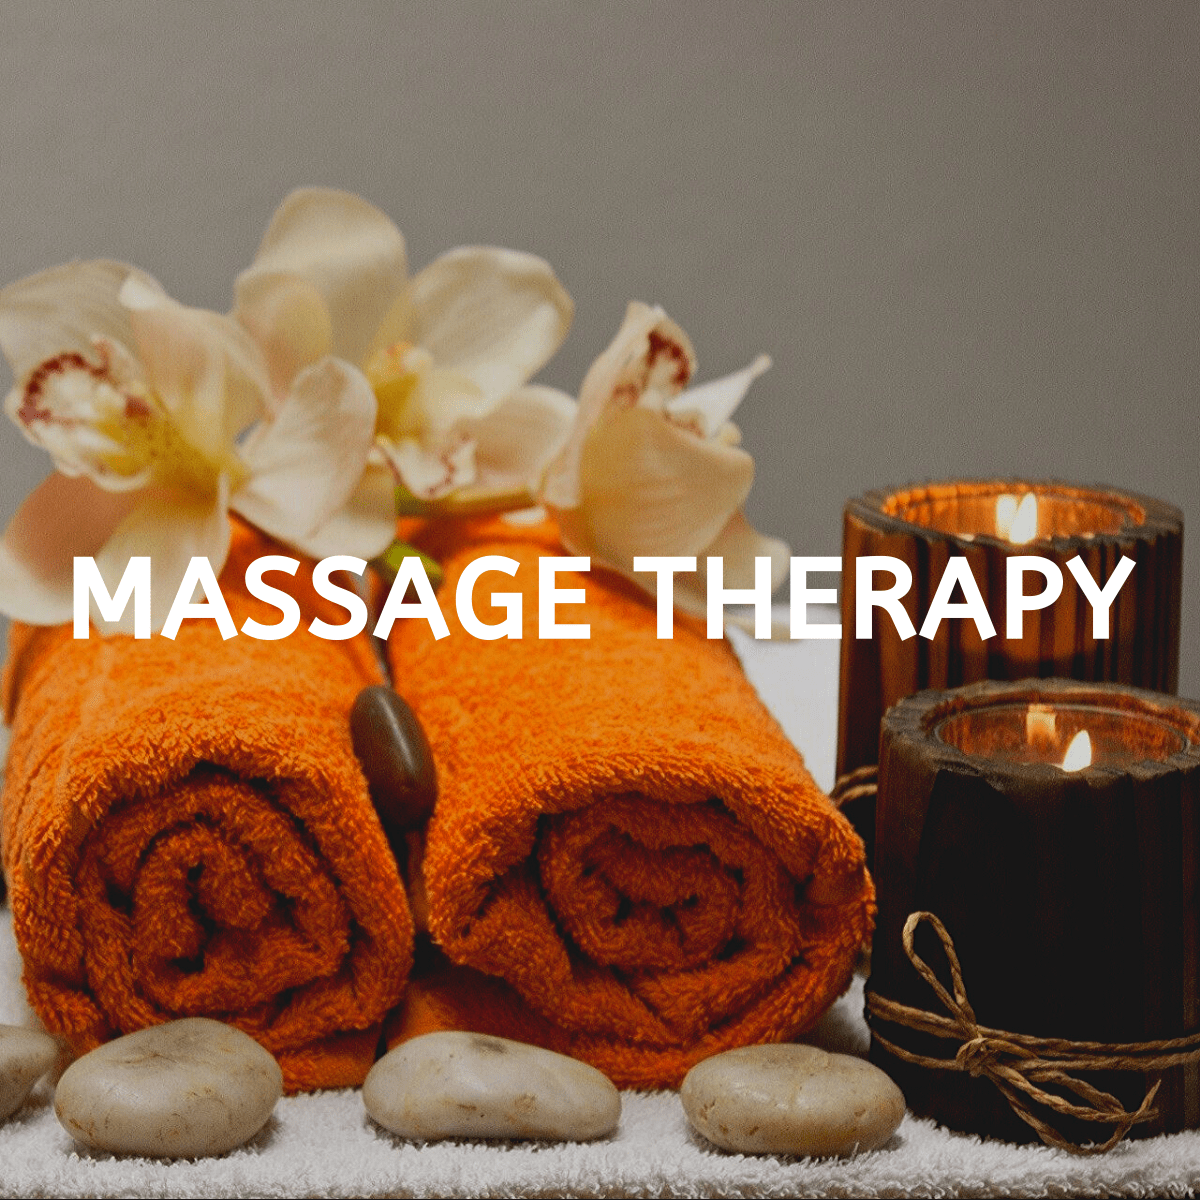 massage-therapy-patricia-martina